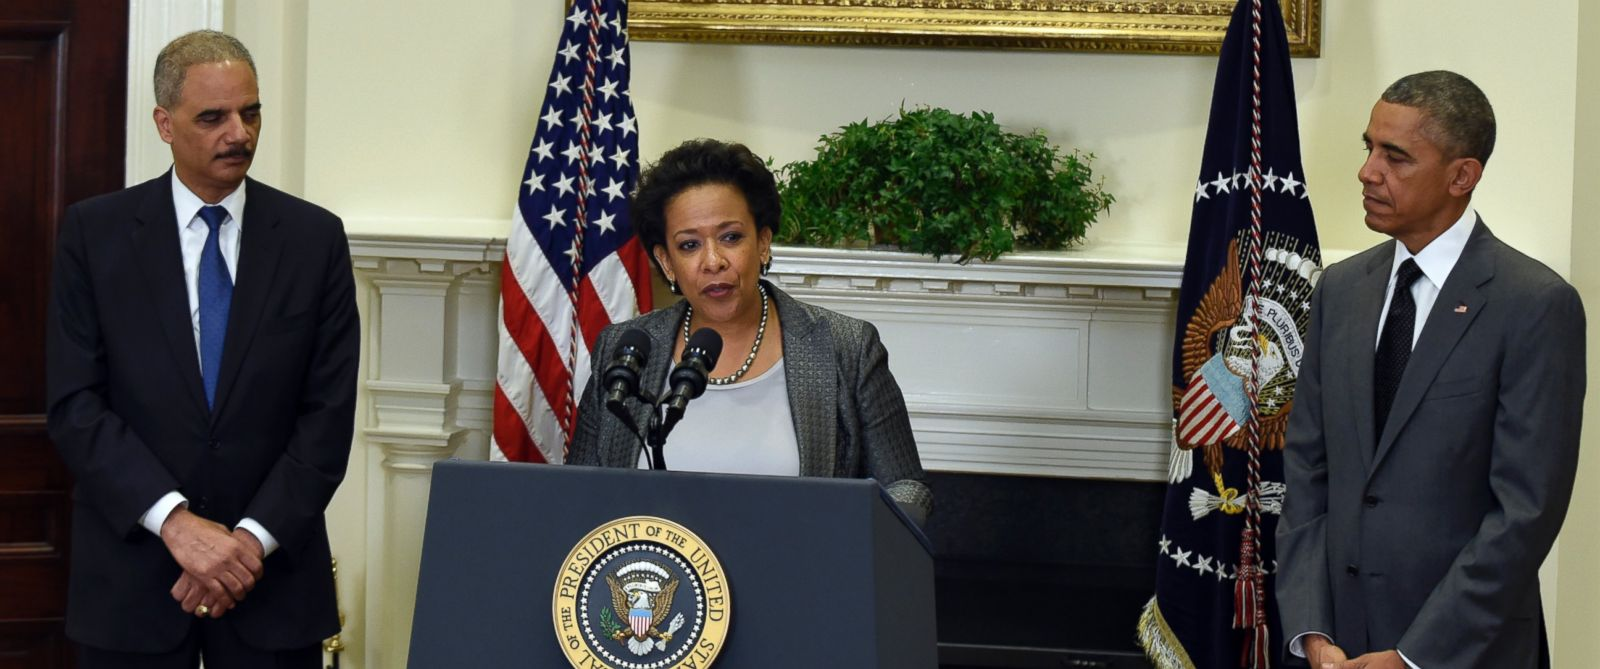 PHOTO: President Barack Obama listens at right as U.S. Attorney Loretta Lynch speaks in the Roosevelt Room of the White House in Washington, Saturday, Nov. 8, 2014, after Obama nominated Lynch to be the Attorney General succeeding Eric Holder, left.